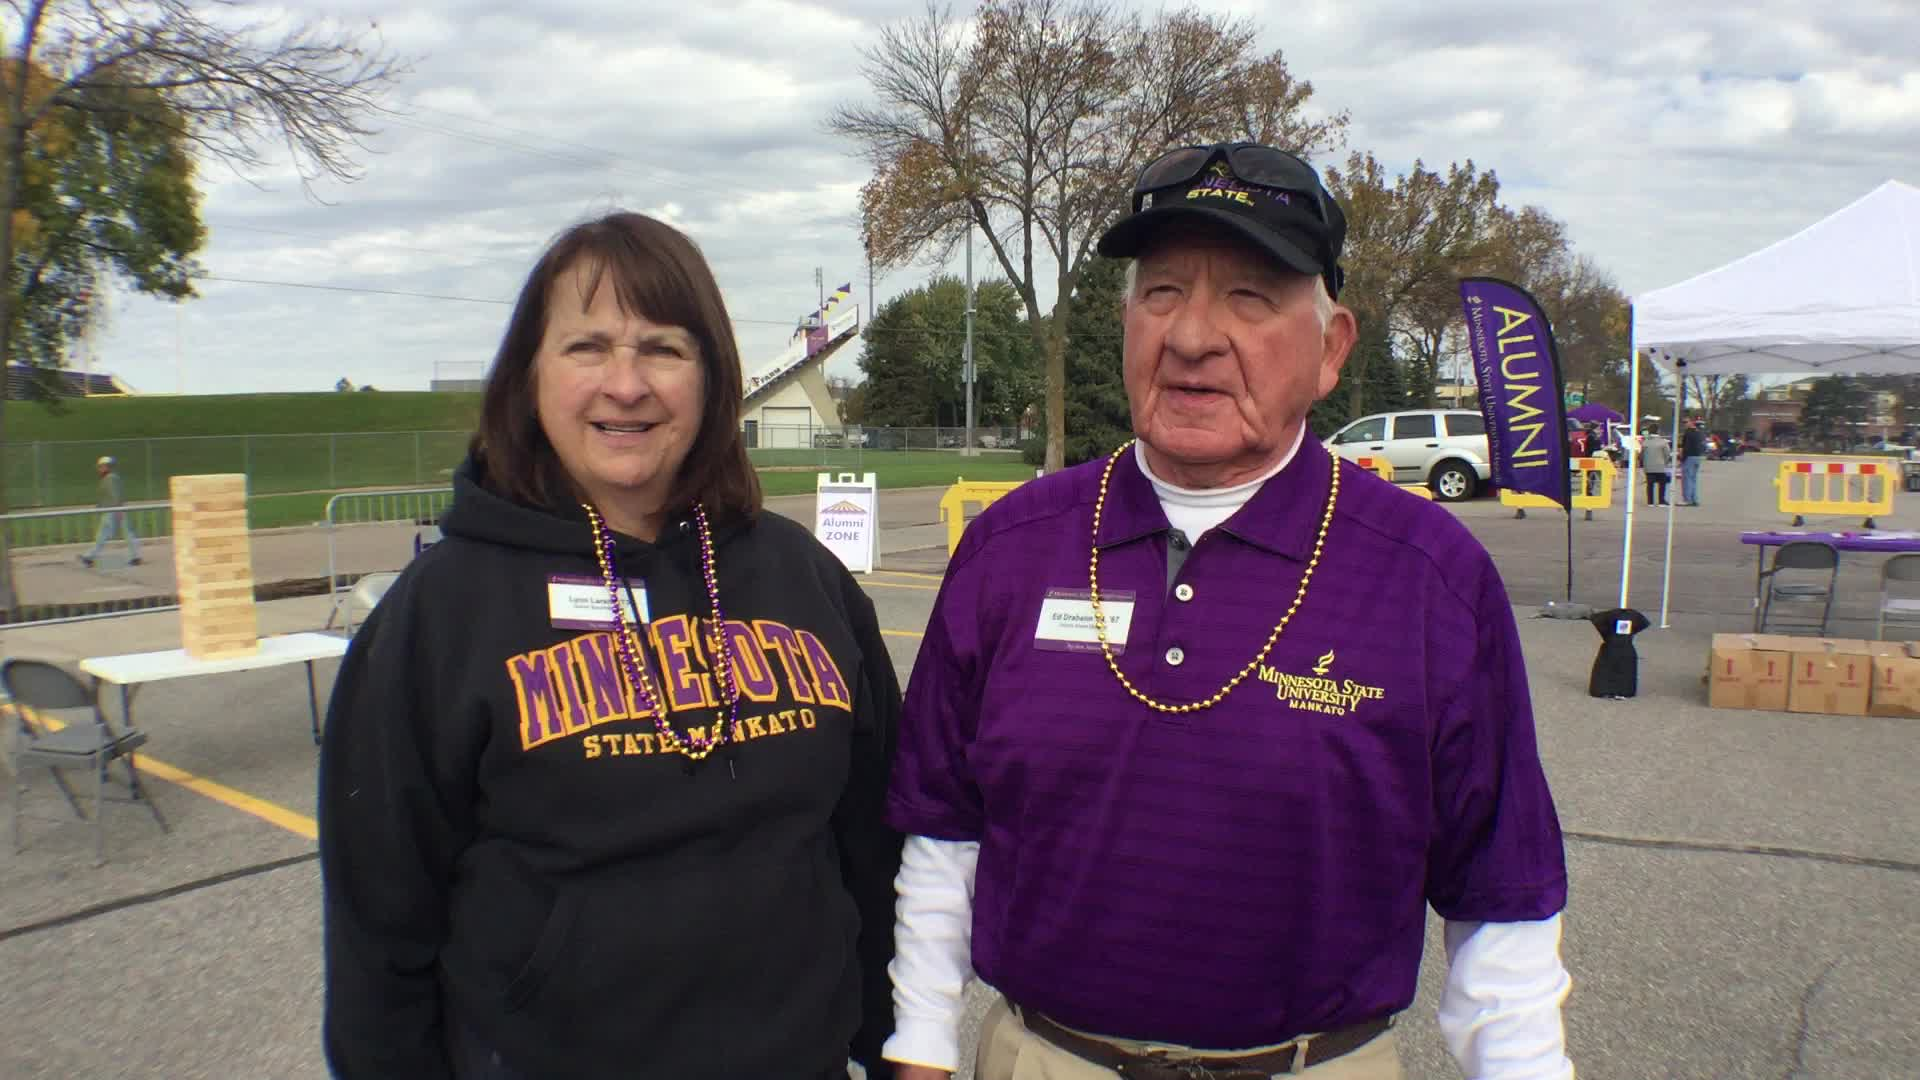 Lynn K. Larson, Ramsey, MN, and Edmund D. Draheim, Owatonna, MN - Homecoming 2016 at Minnesota State University, Mankato